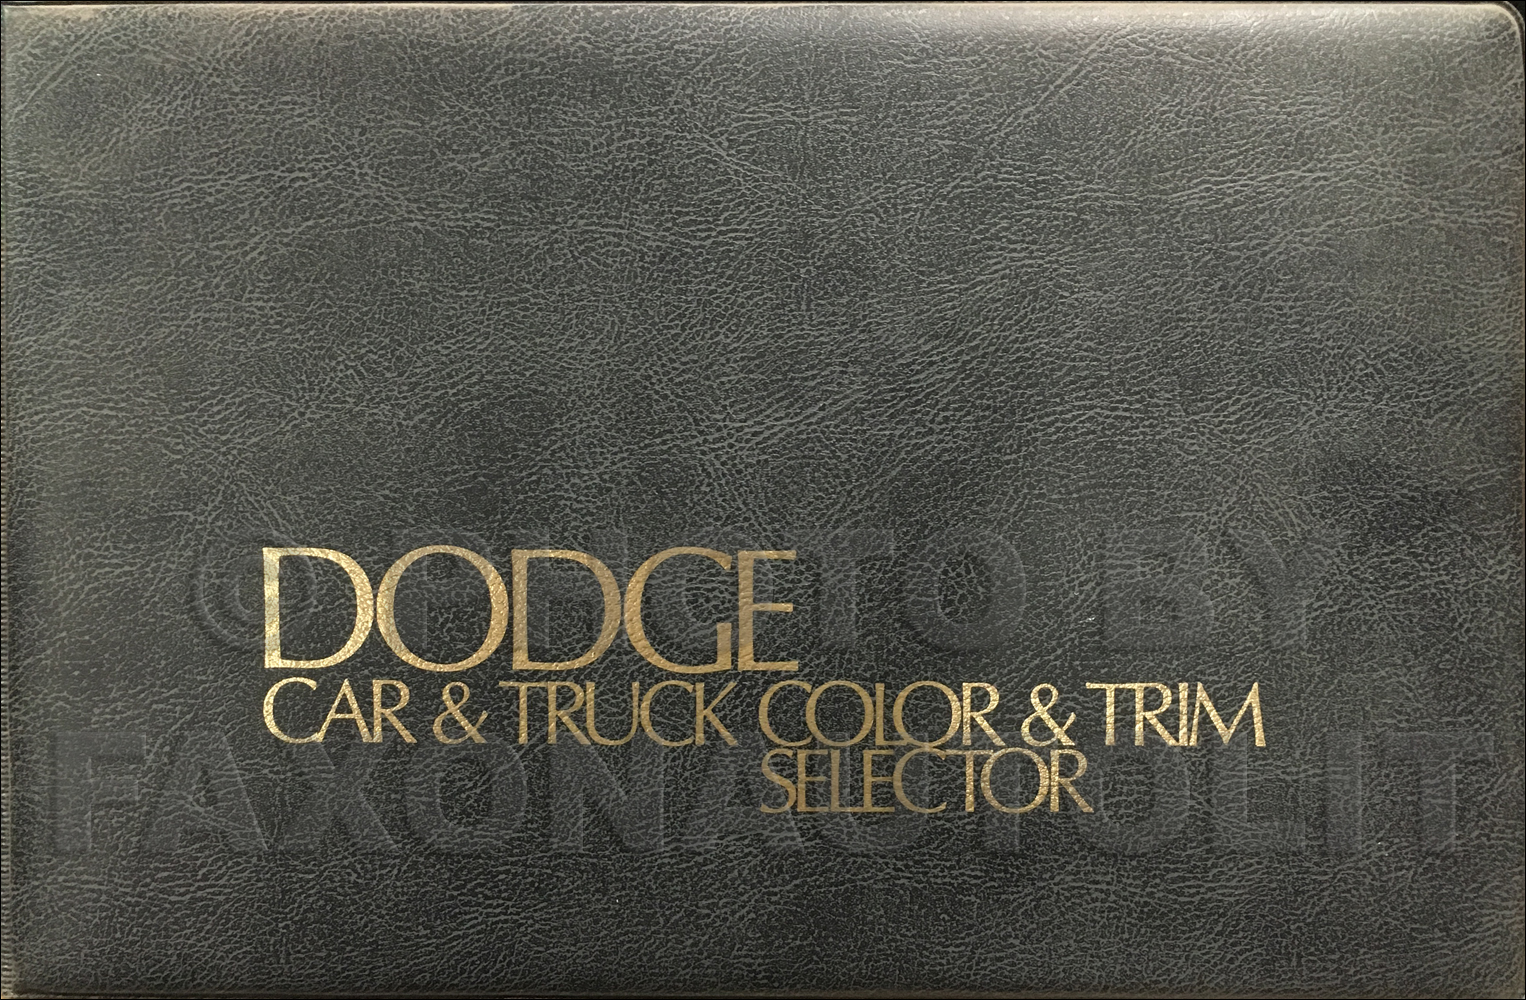 1975 Dodge Color & Upholstery Album Original